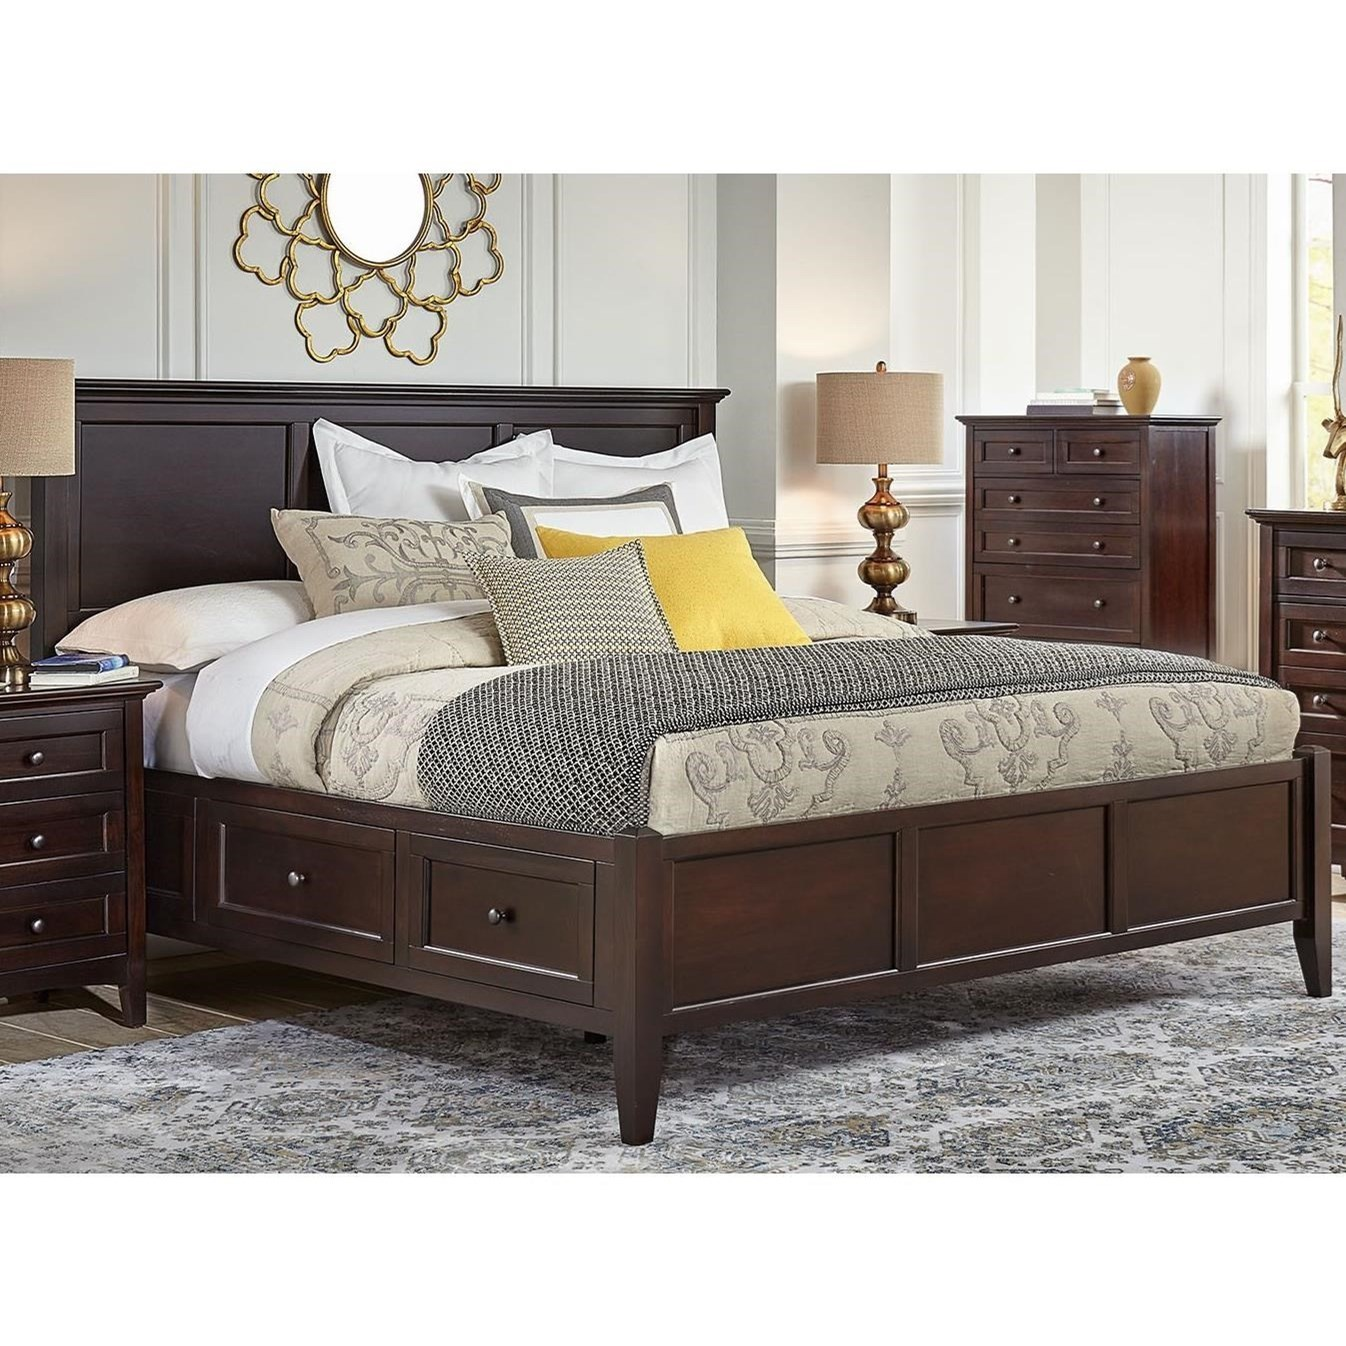 Aamerica Westlake Transitional California King Bed With 6 Storage Drawers Zak S Home Panel Beds